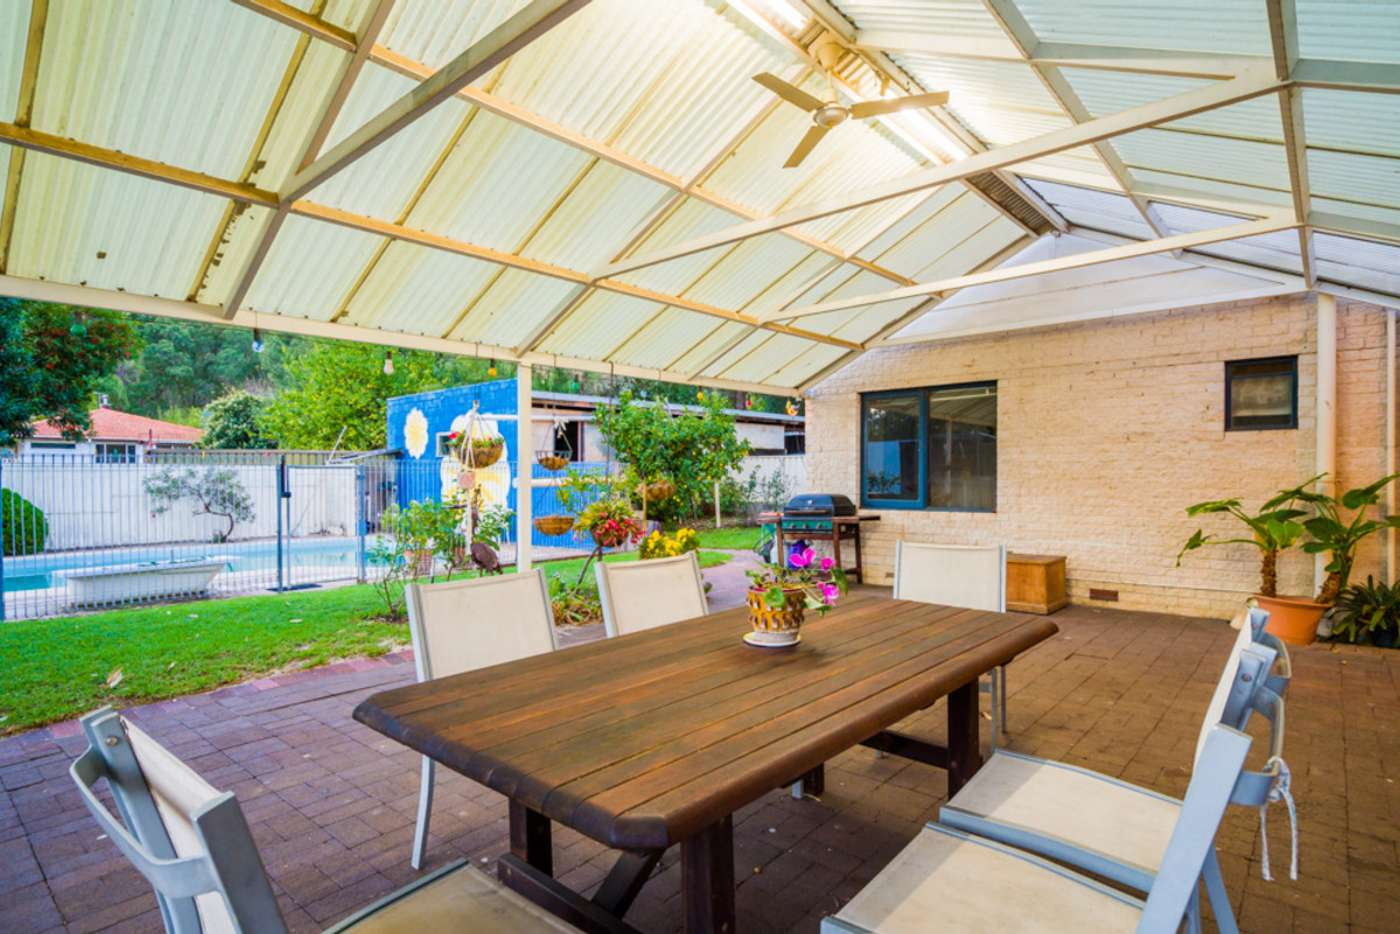 Main view of Homely house listing, 7 Birtwistle Place, Roleystone WA 6111